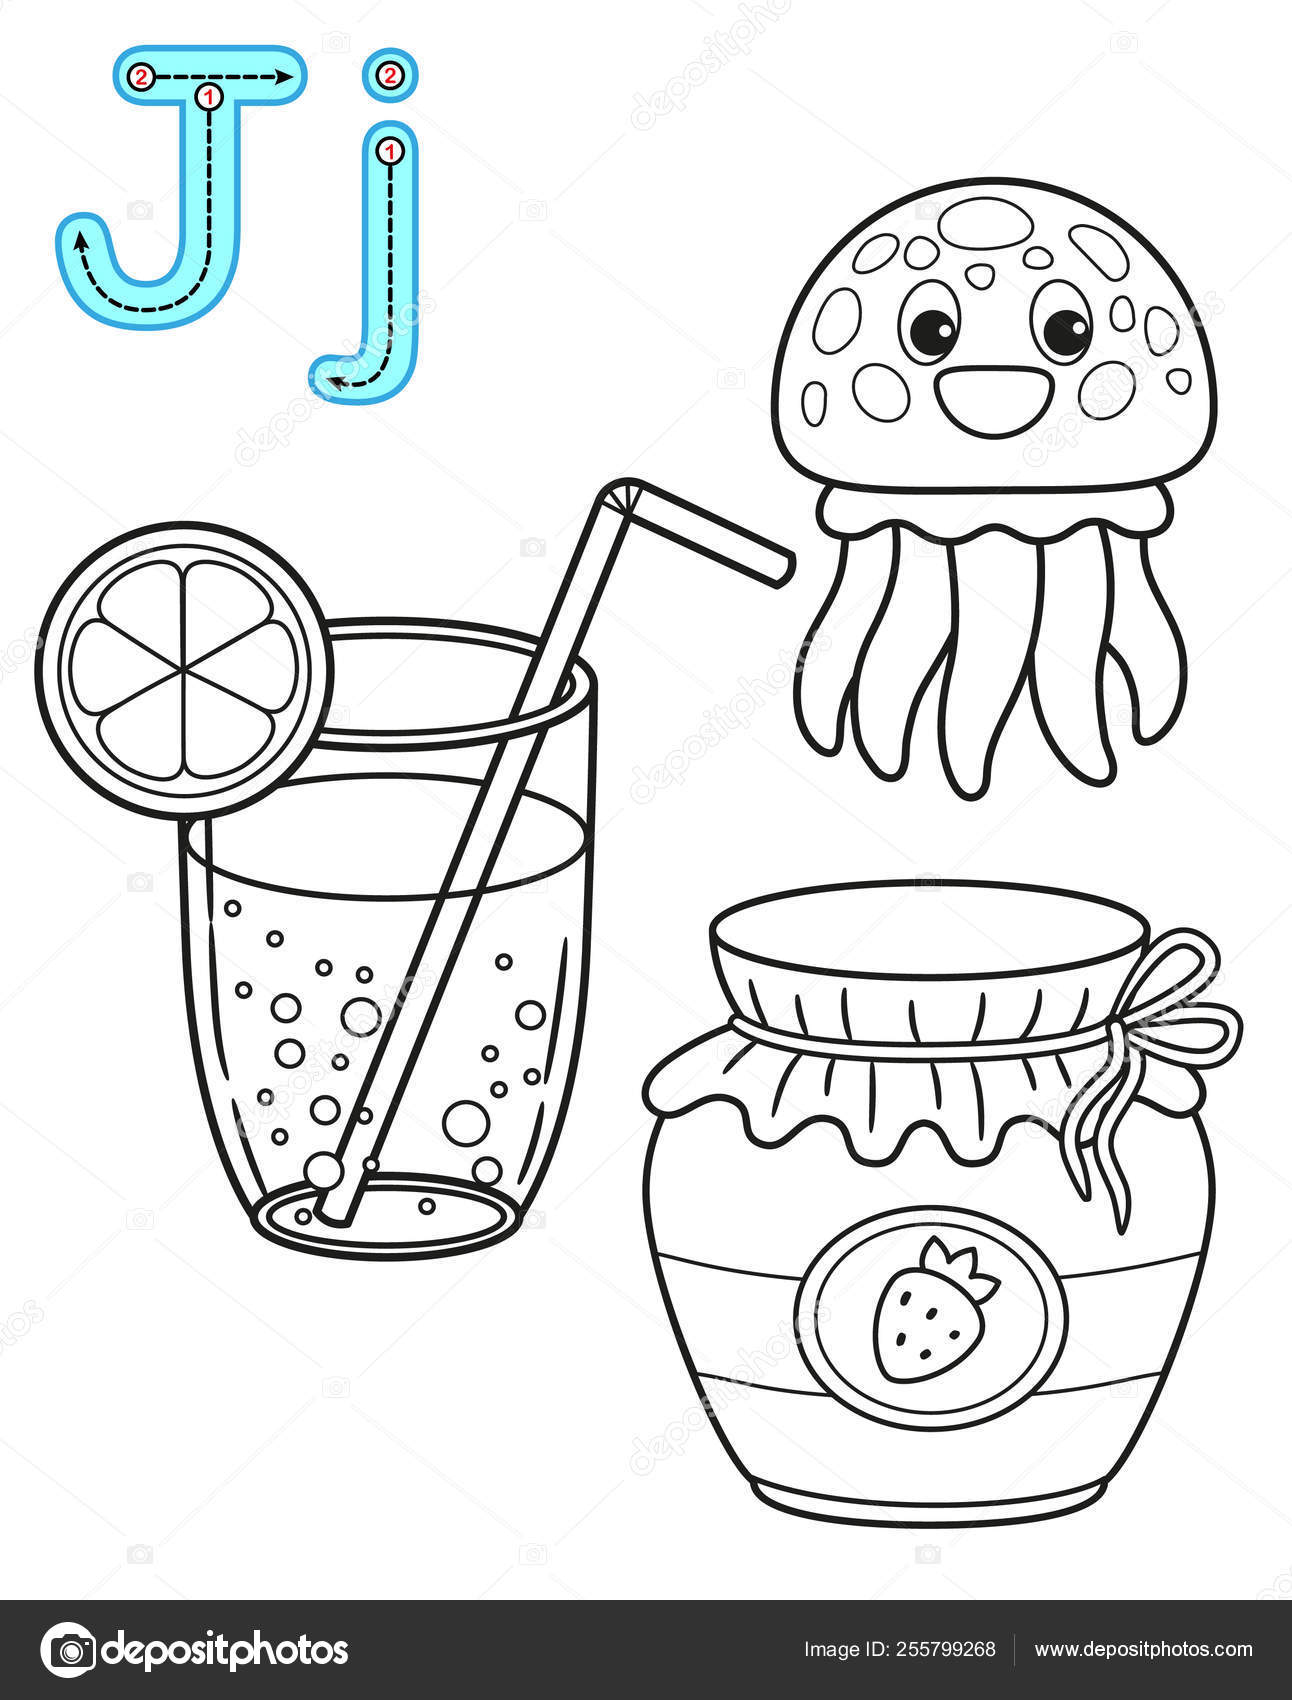 Jellyfish Coloring Pages Preschool